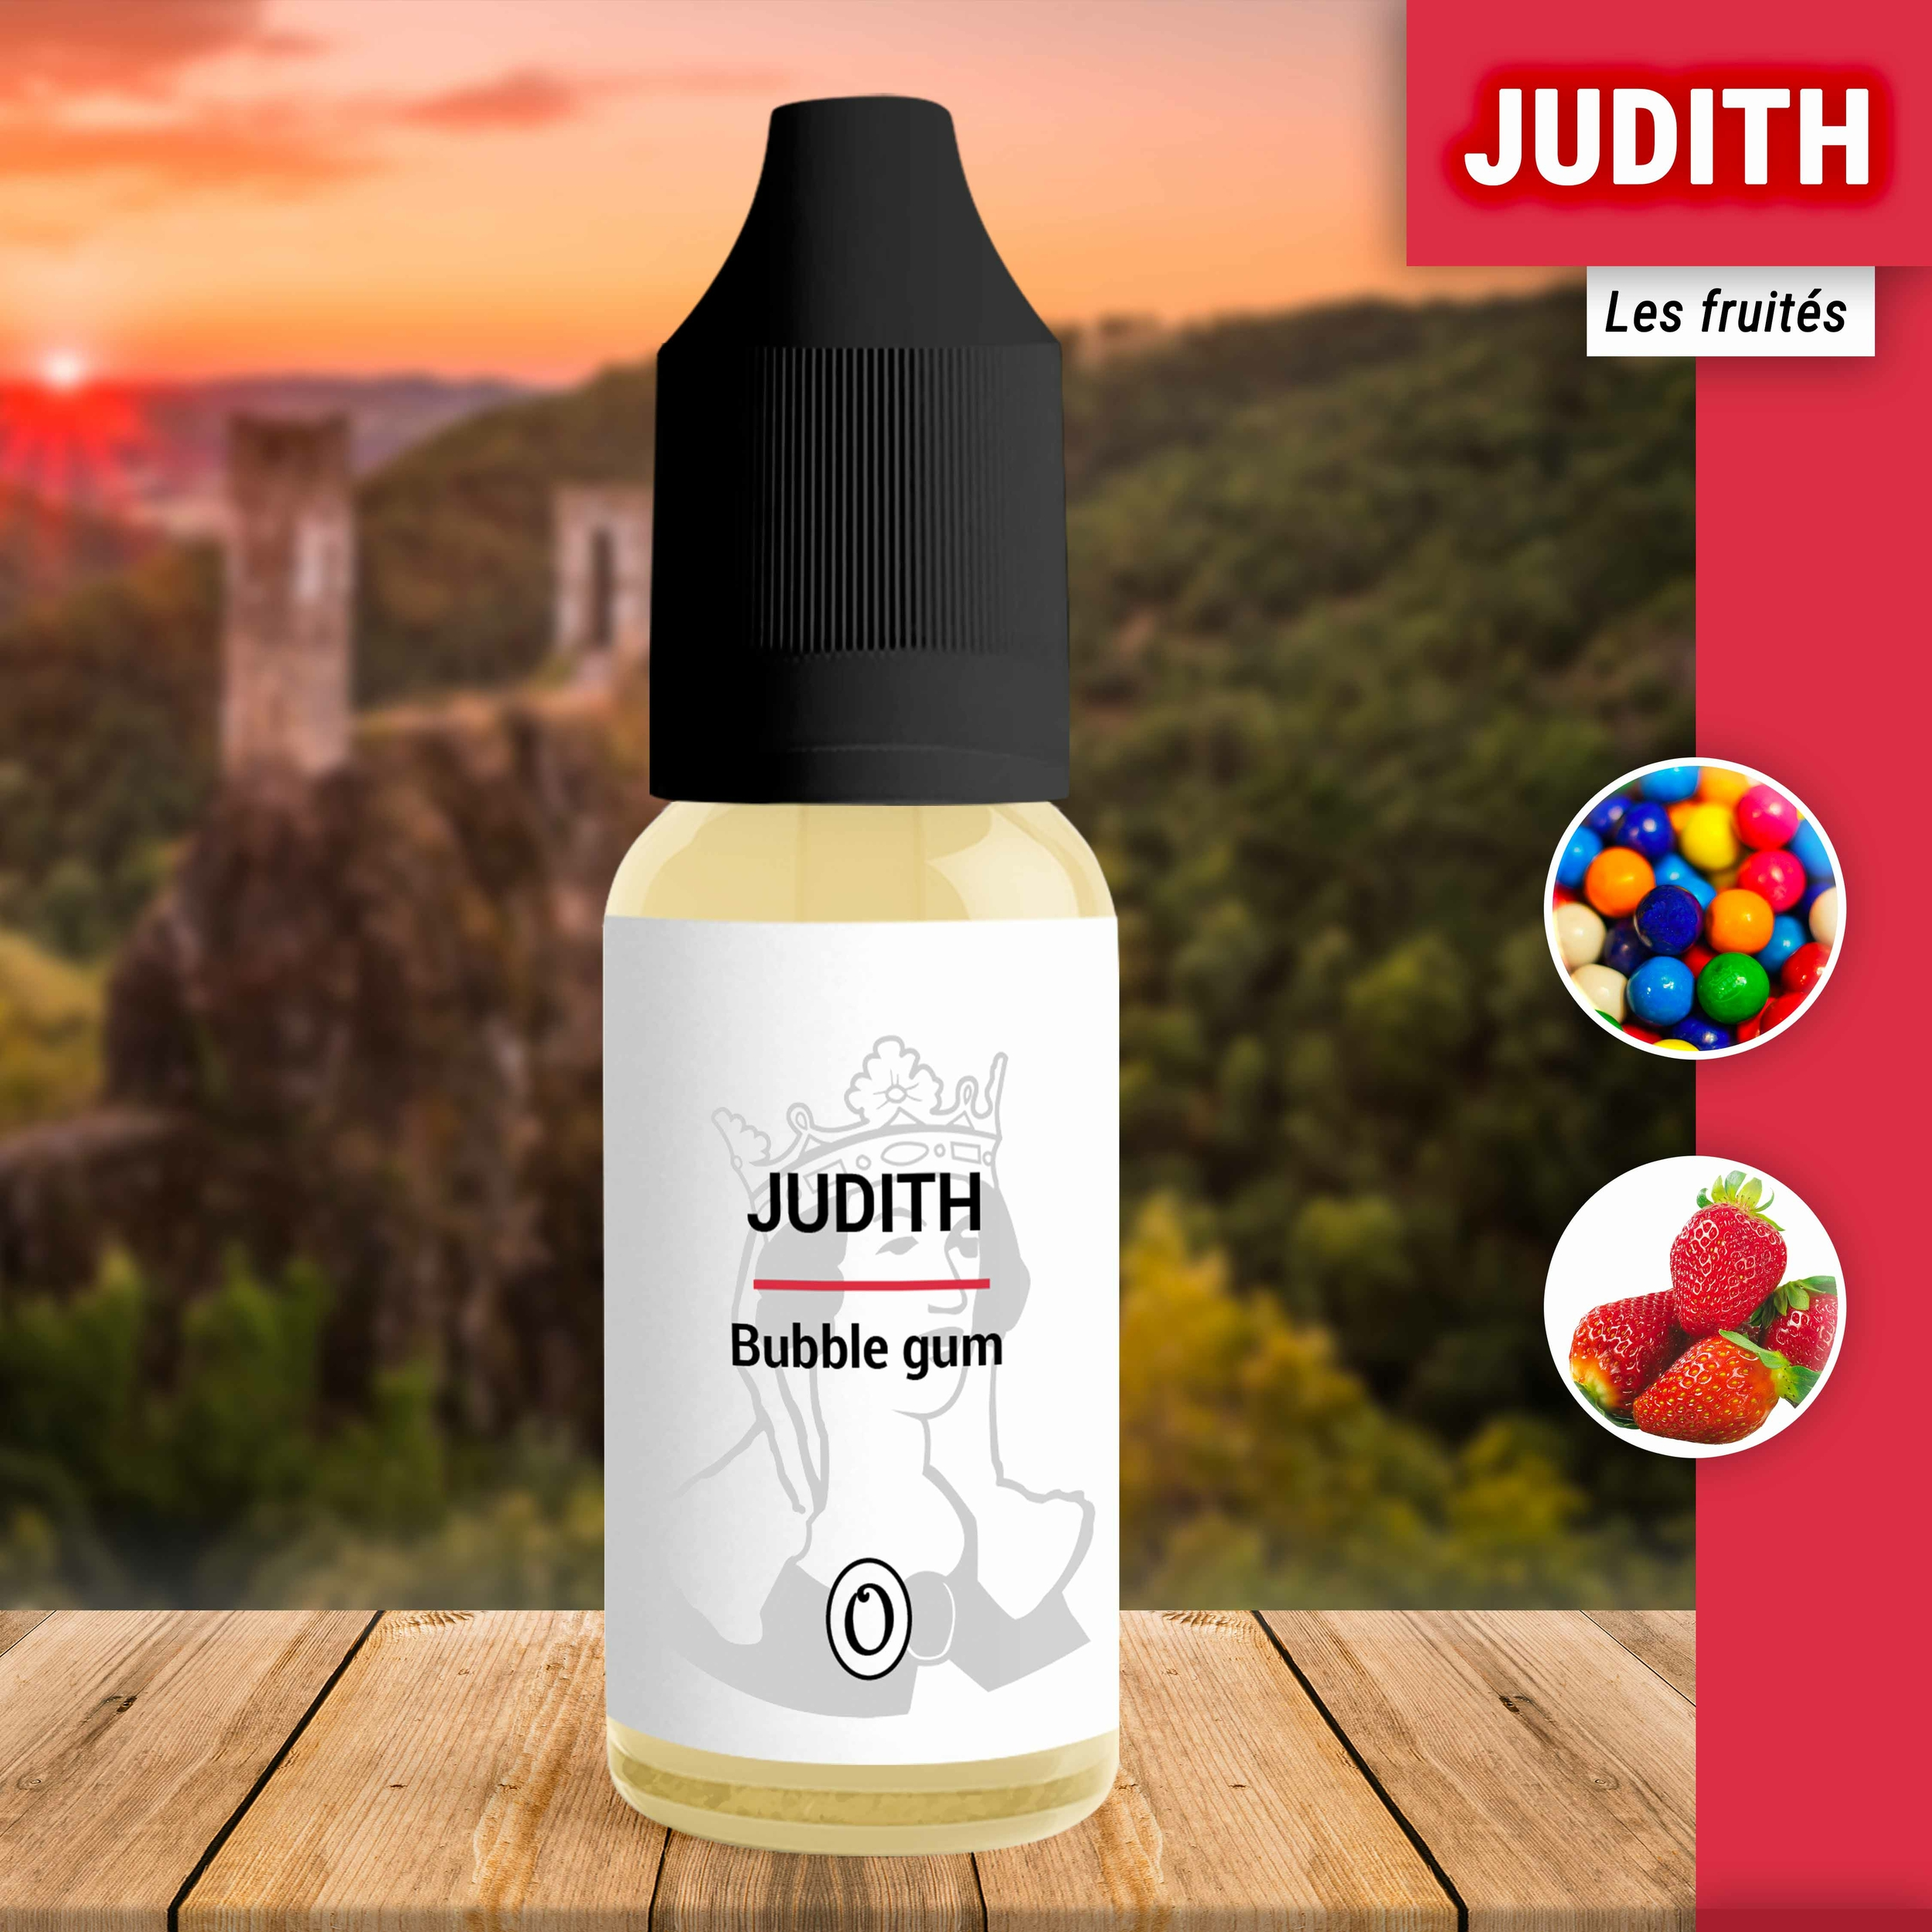 Judith_Fruité_HD